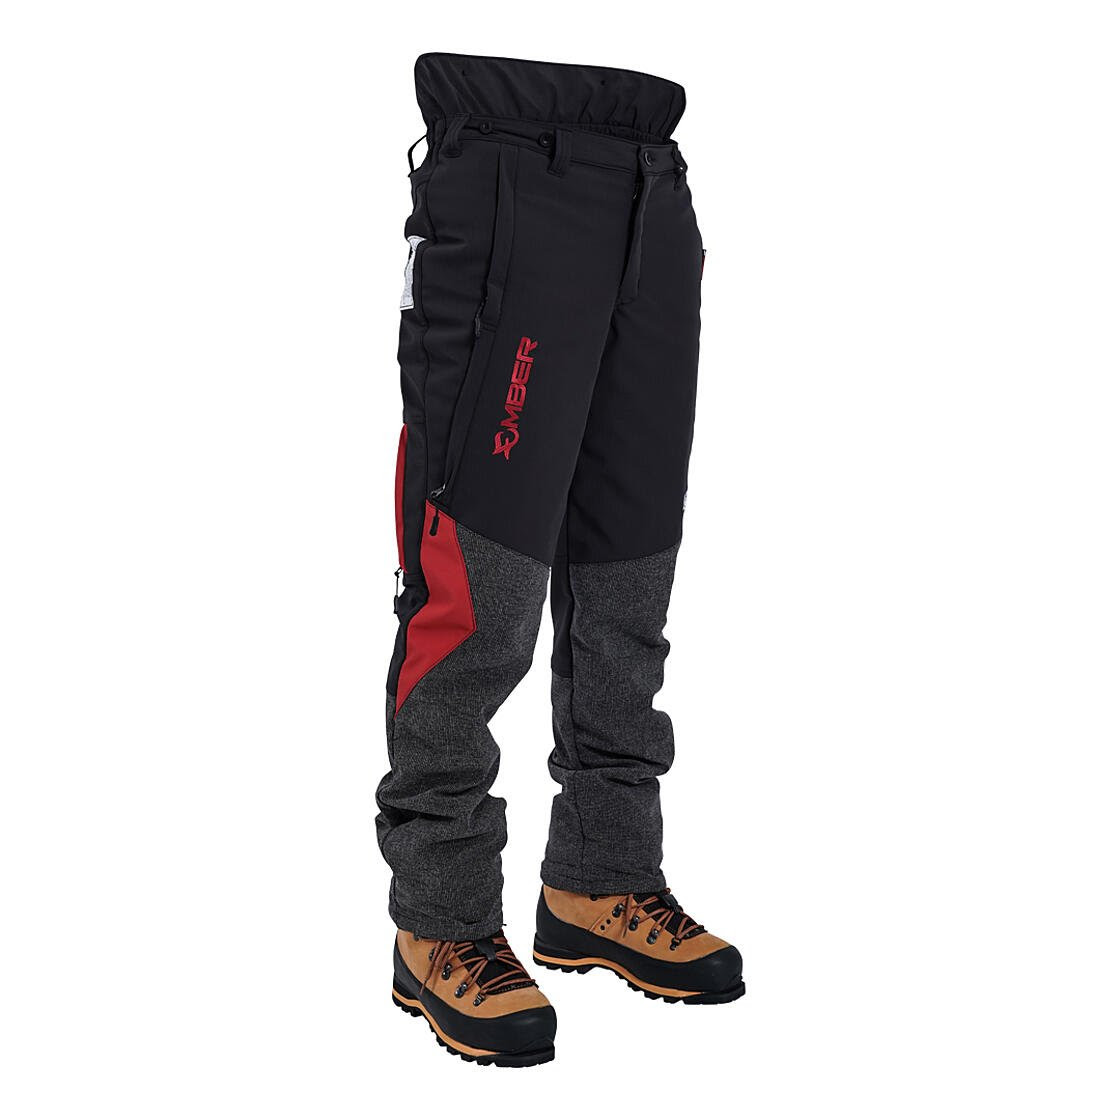 Clogger Ember Women's Chainsaw Pants